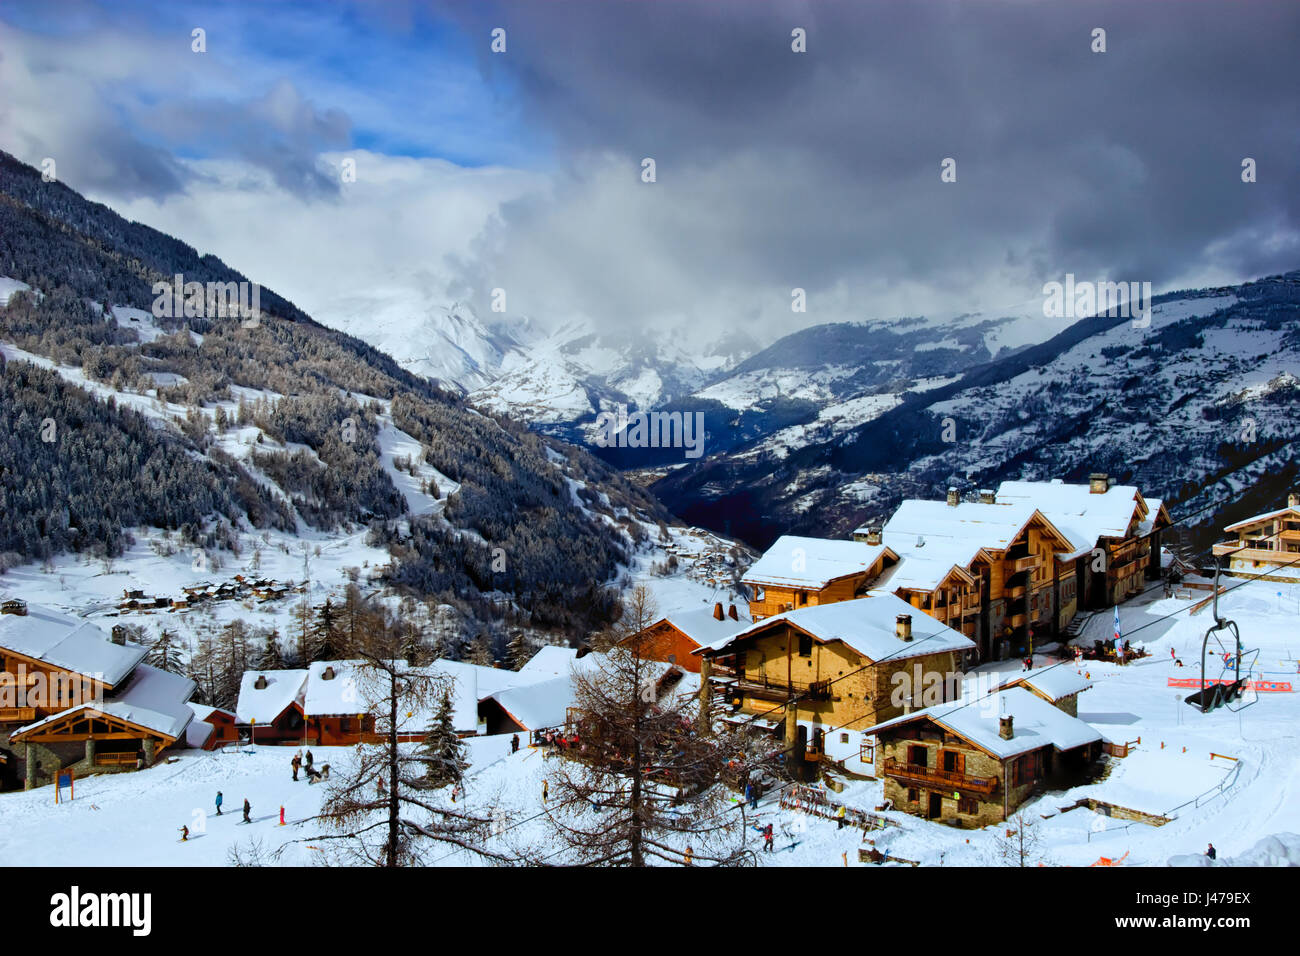 Tarentaise Valley and Sainte Foy ski resort in the northern French Alps, France - Stock Image